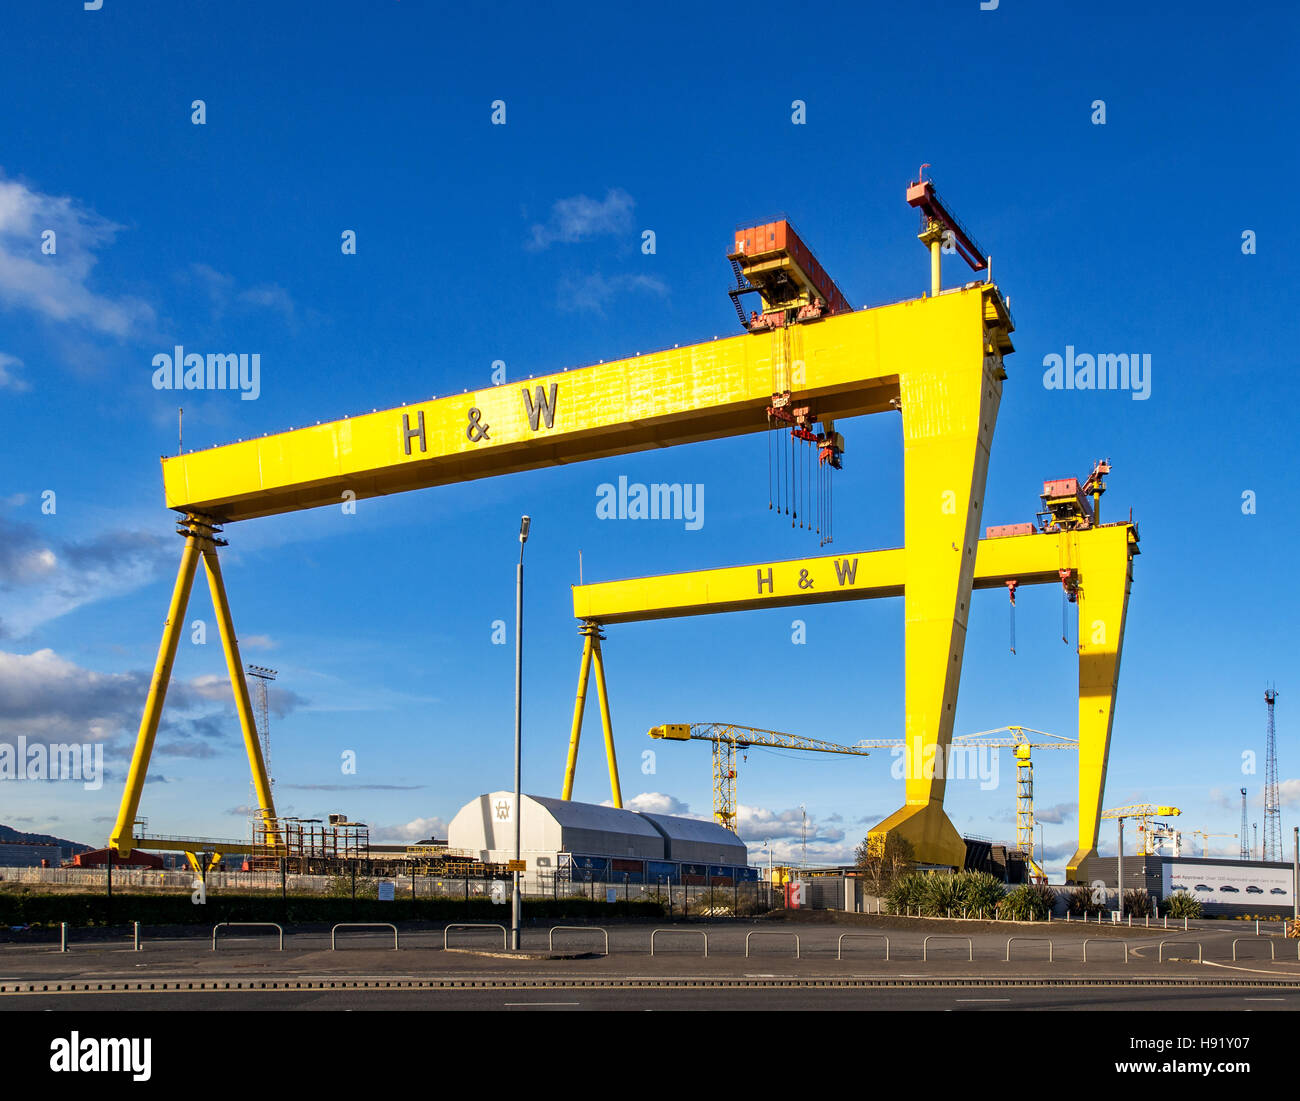 Samson and Goliath. Twin shipbuilding gantry cranes in Titanic quarter, famous landmark of Belfast, Norther Ireland. - Stock Image